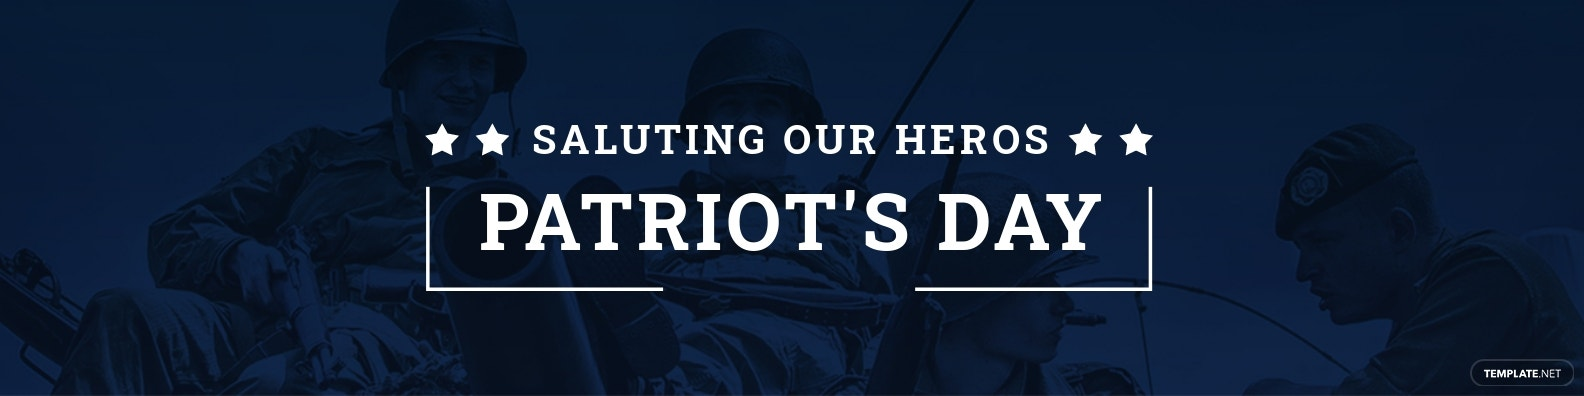 Patriot's Day LinkedIn Profile banner Template